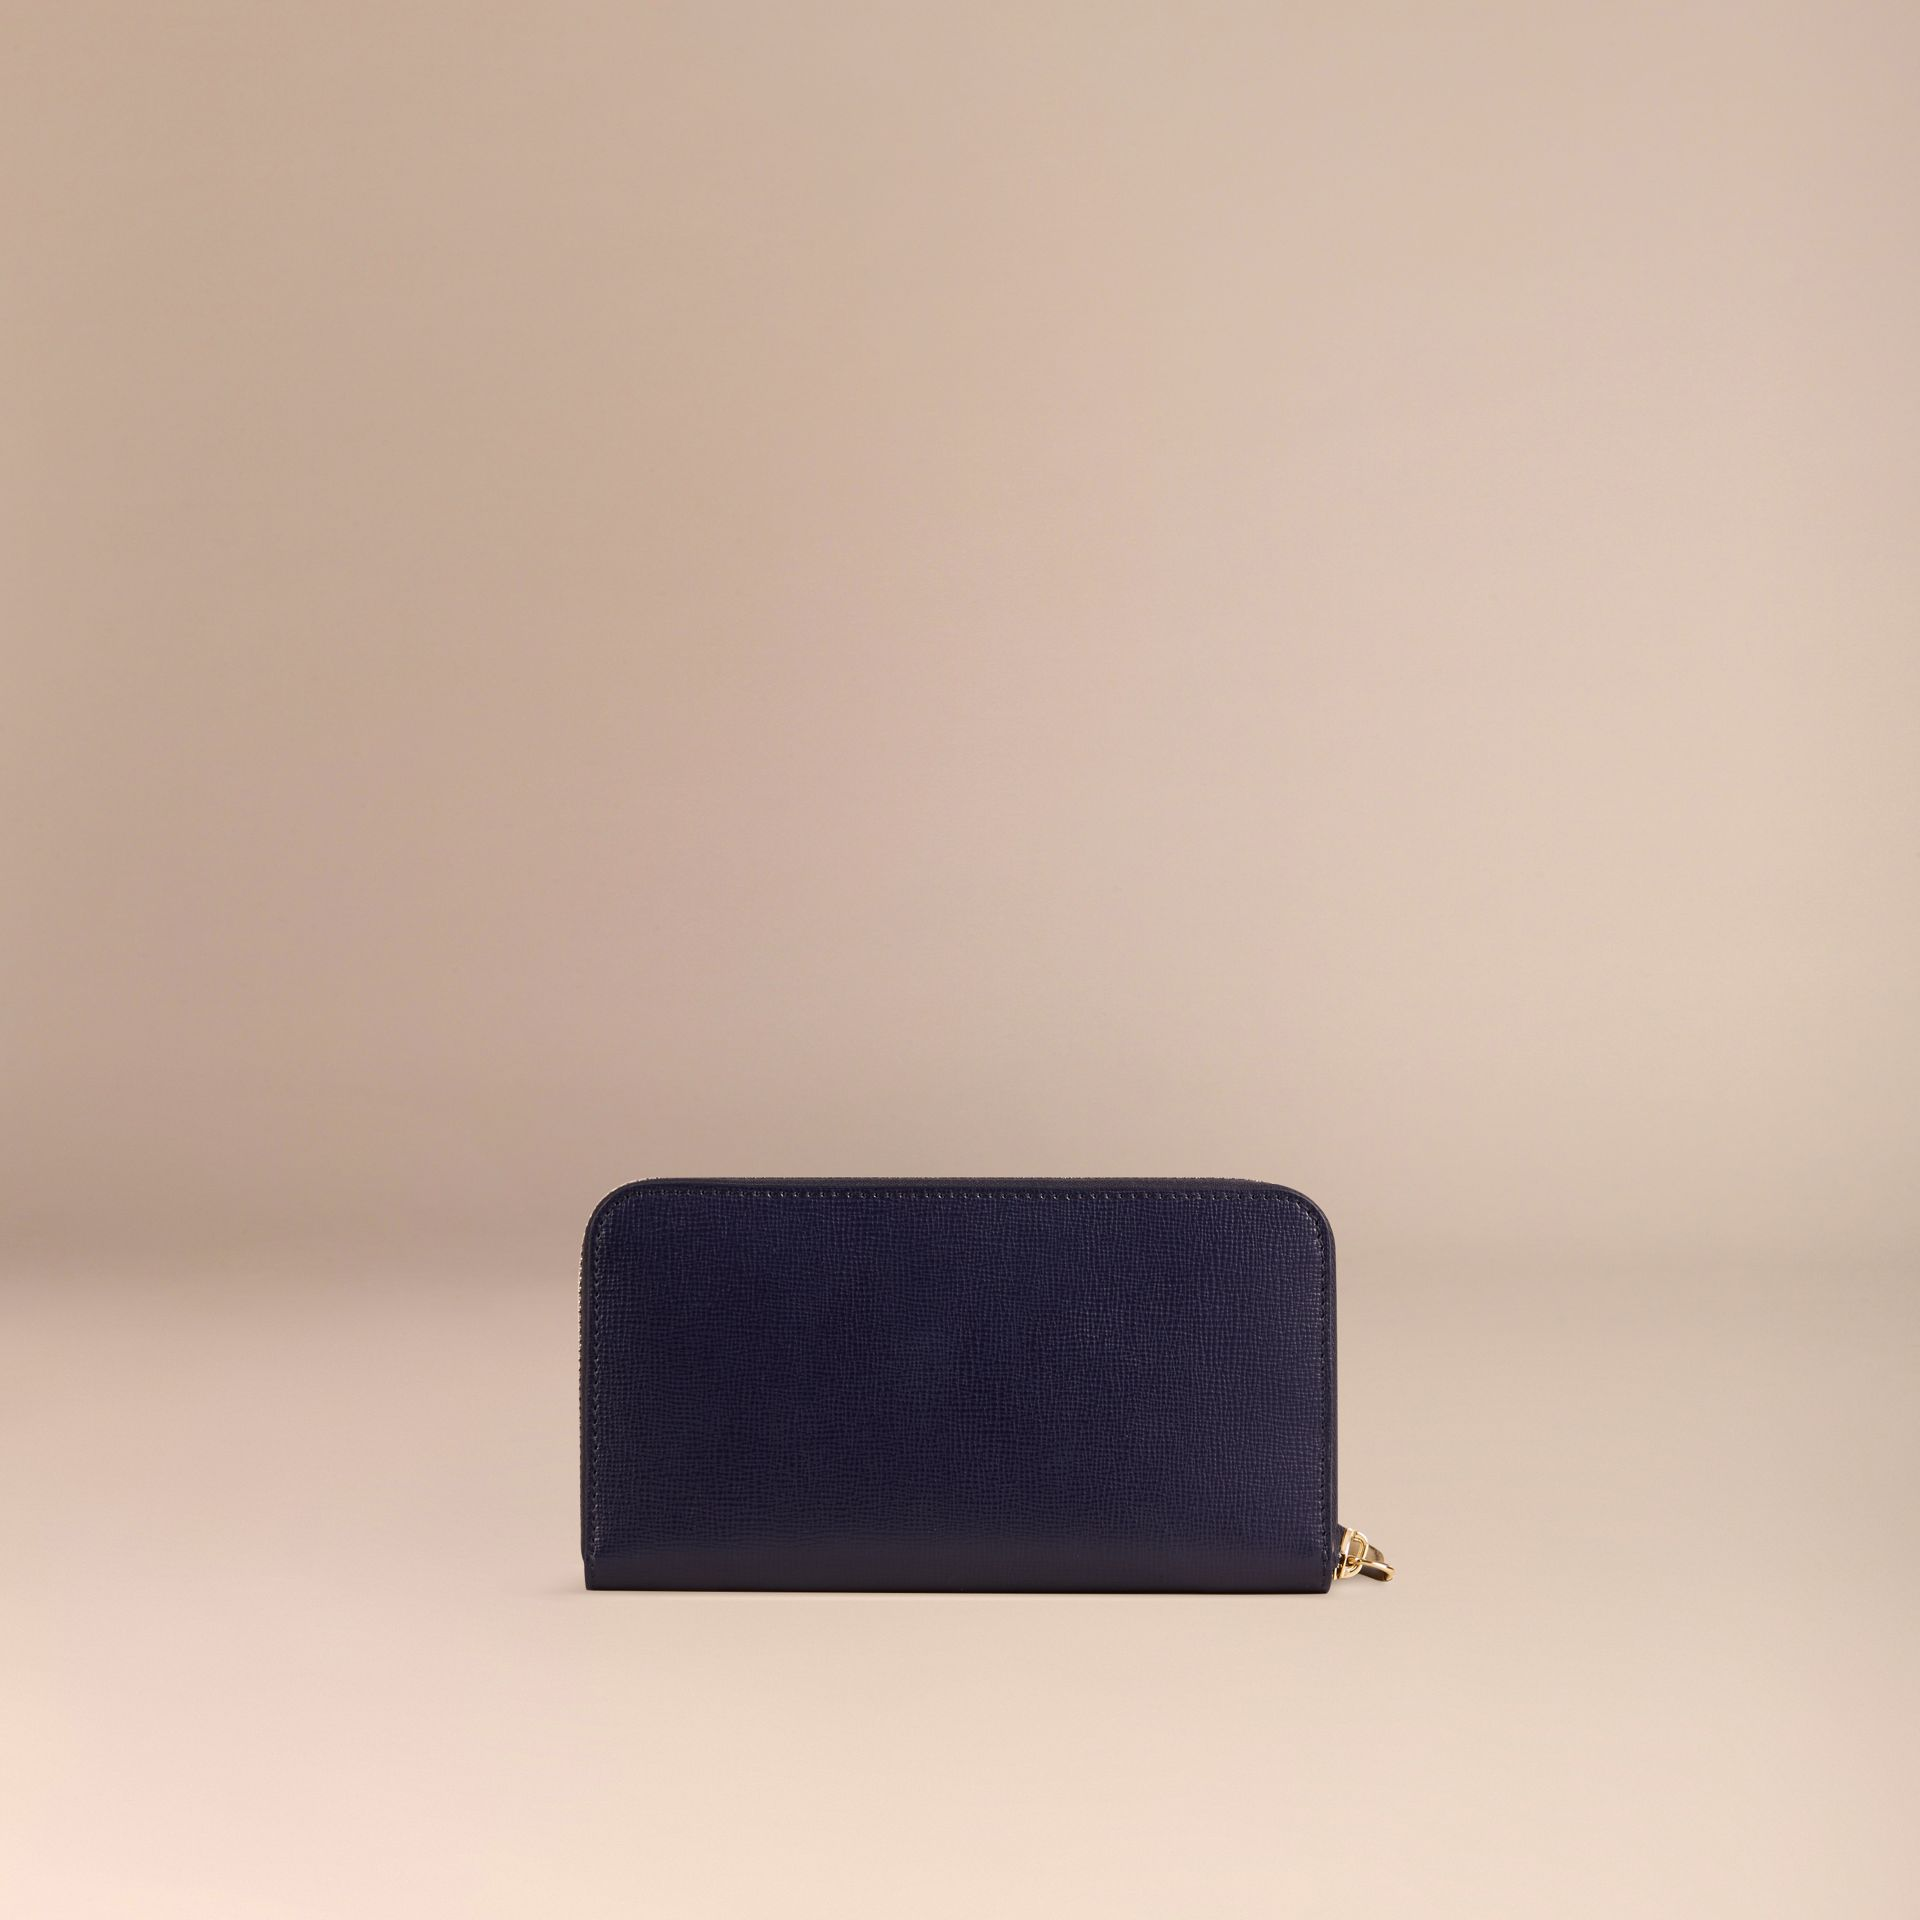 London Leather Ziparound Wallet Dark Navy - gallery image 4